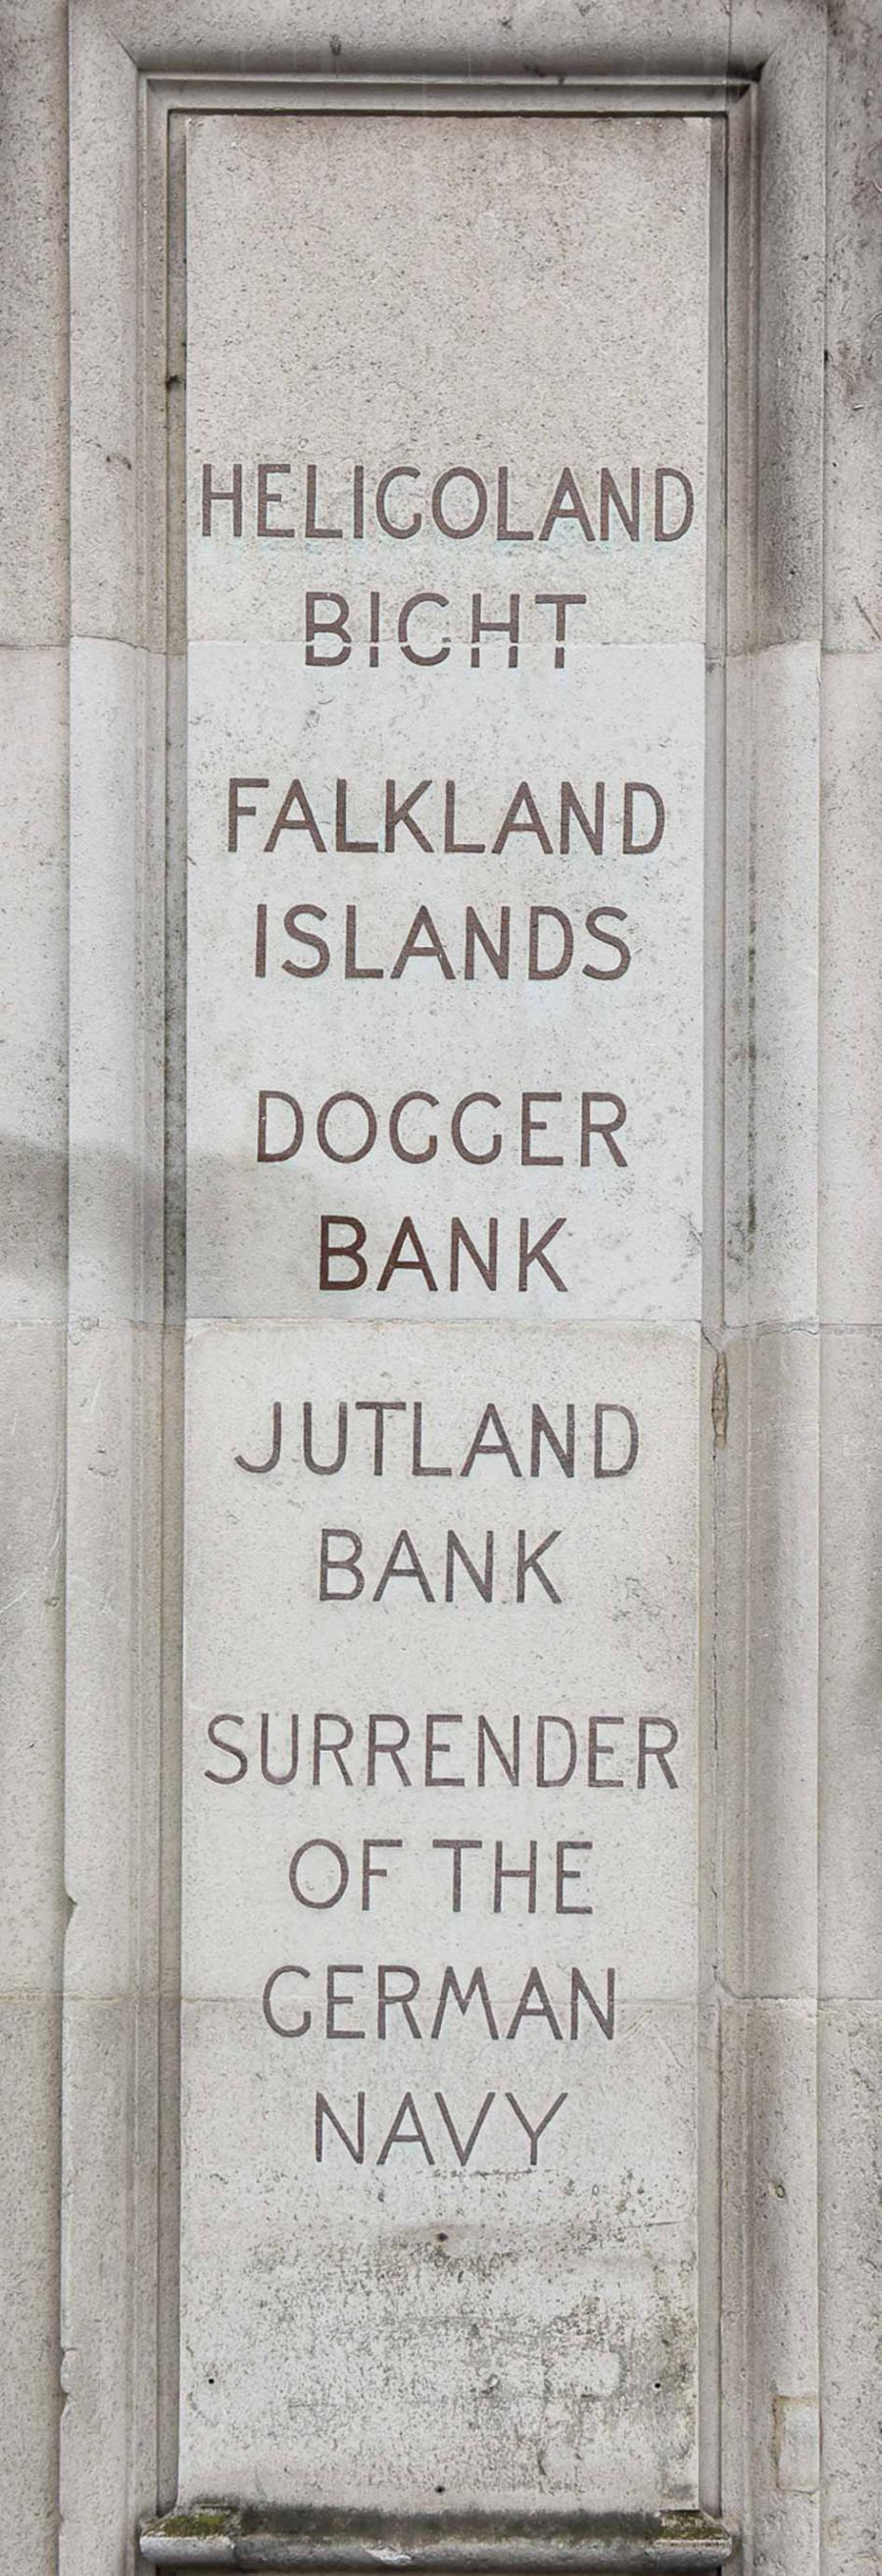 Nearly 9,000 seamen lost their lives during the Battle of Jutland